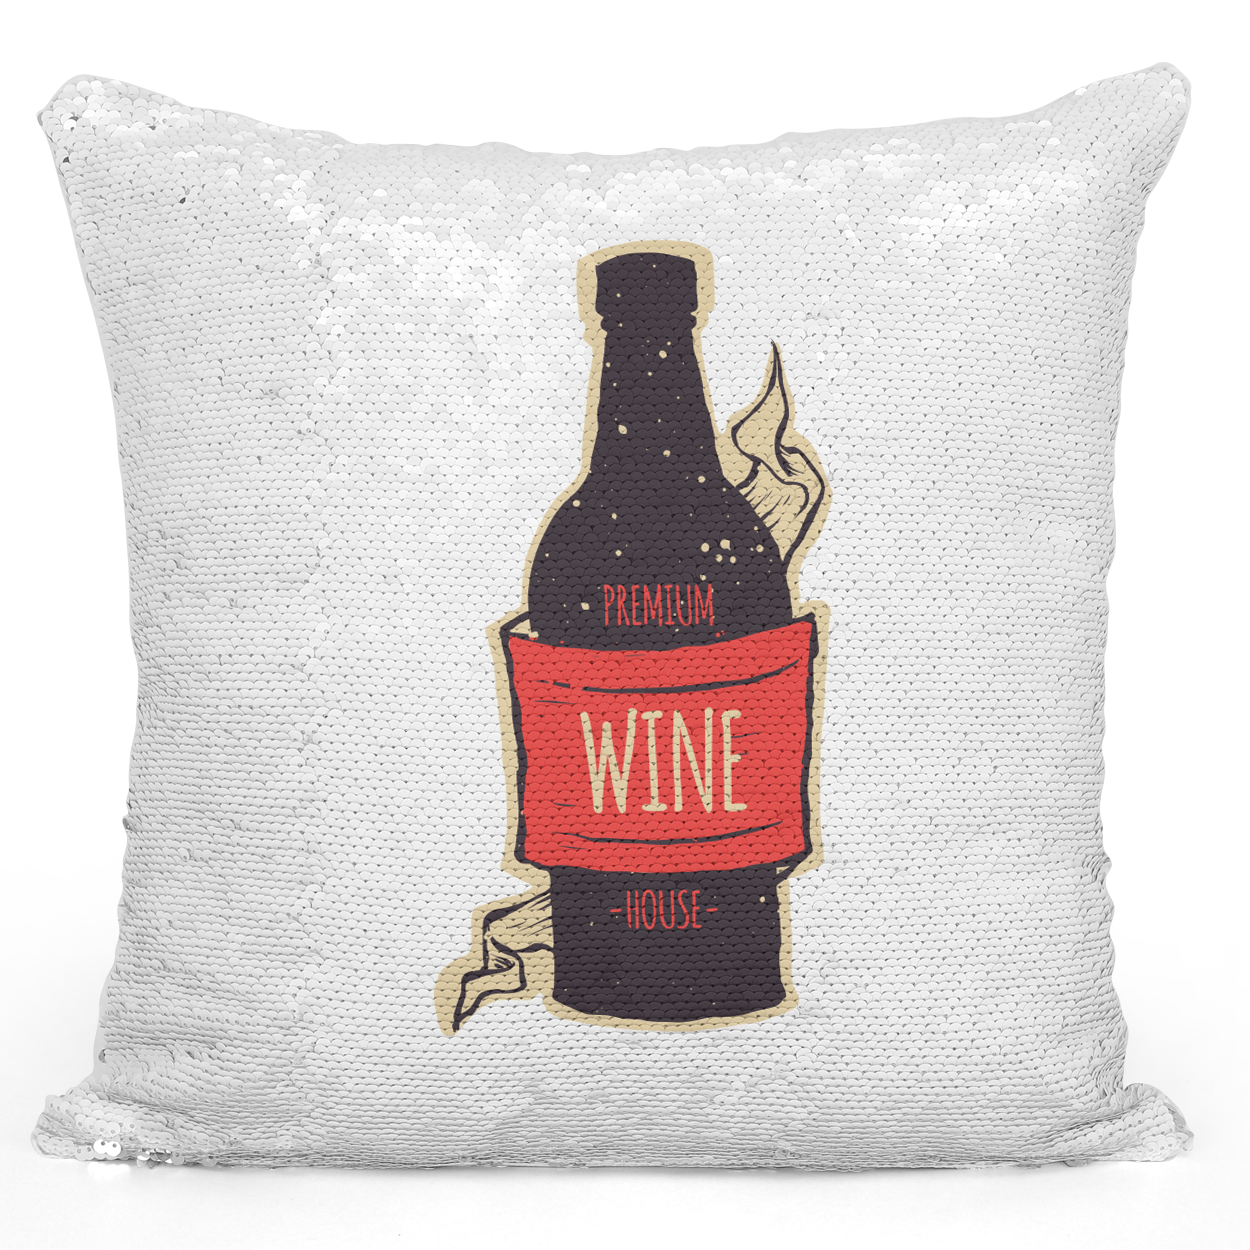 Sequin Pillow Magic Mermaid Throw Pillow Wine Bottle - Pure White Printed 16 x 16 inch Square Home Decor Couch Pillow Loud Universe